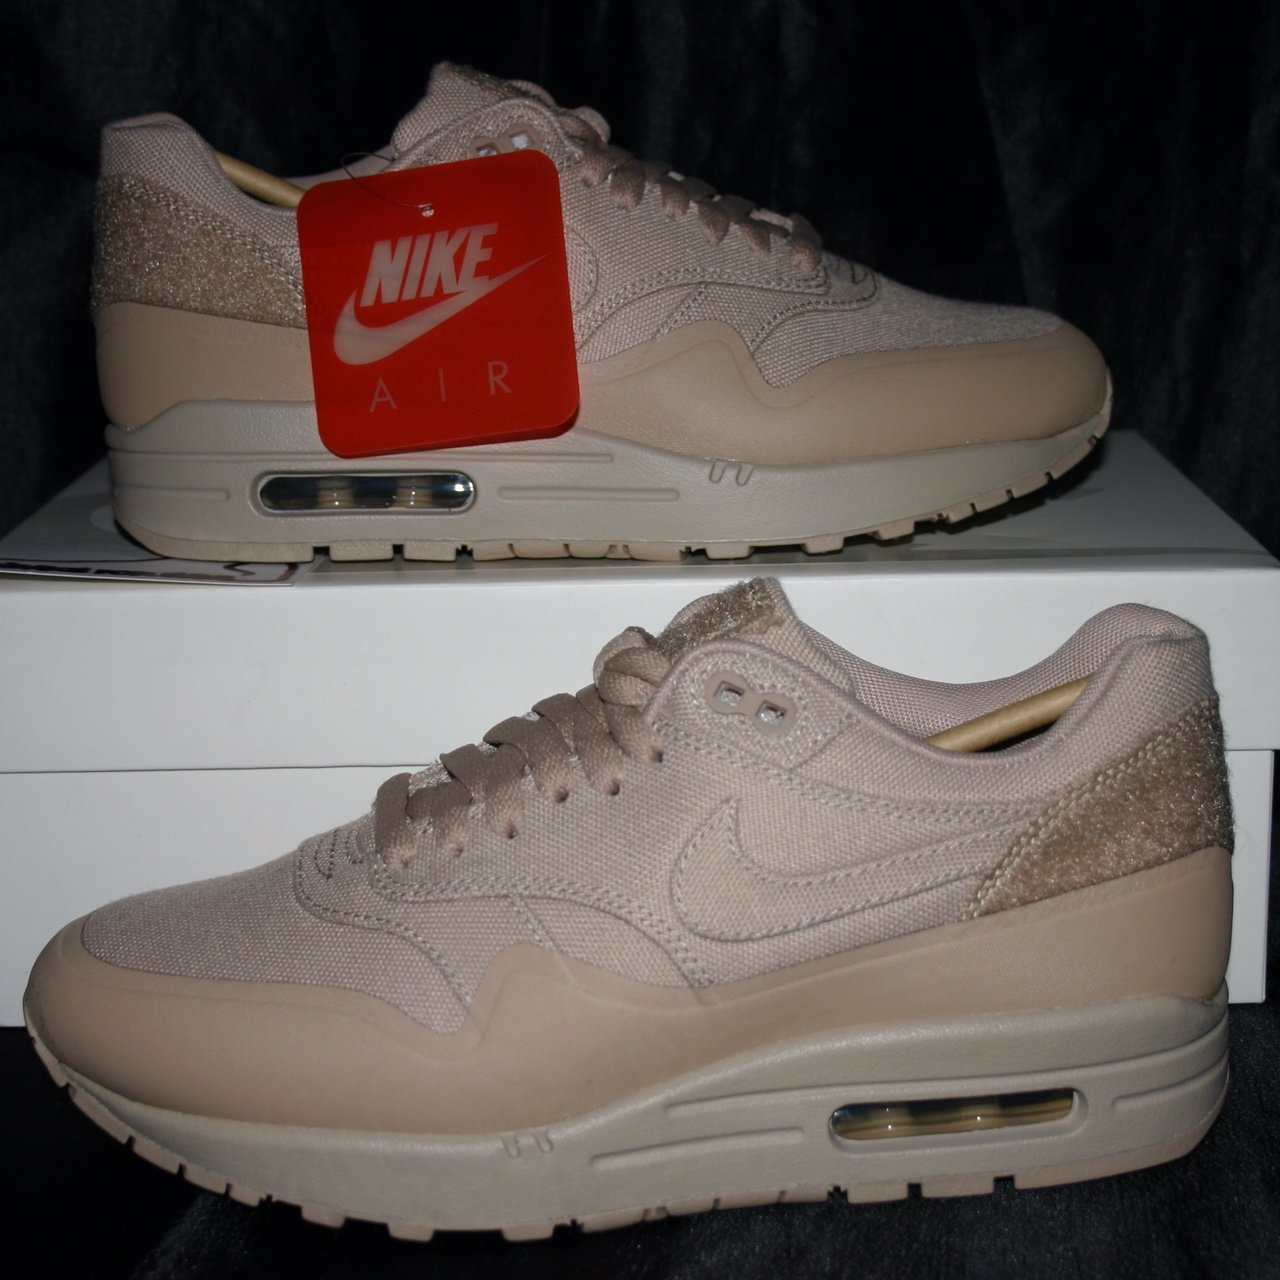 separation shoes 16116 2bcb8 sneaksforsale. 4 years ago. London, UK. Nike Air Max 1 V SP ...